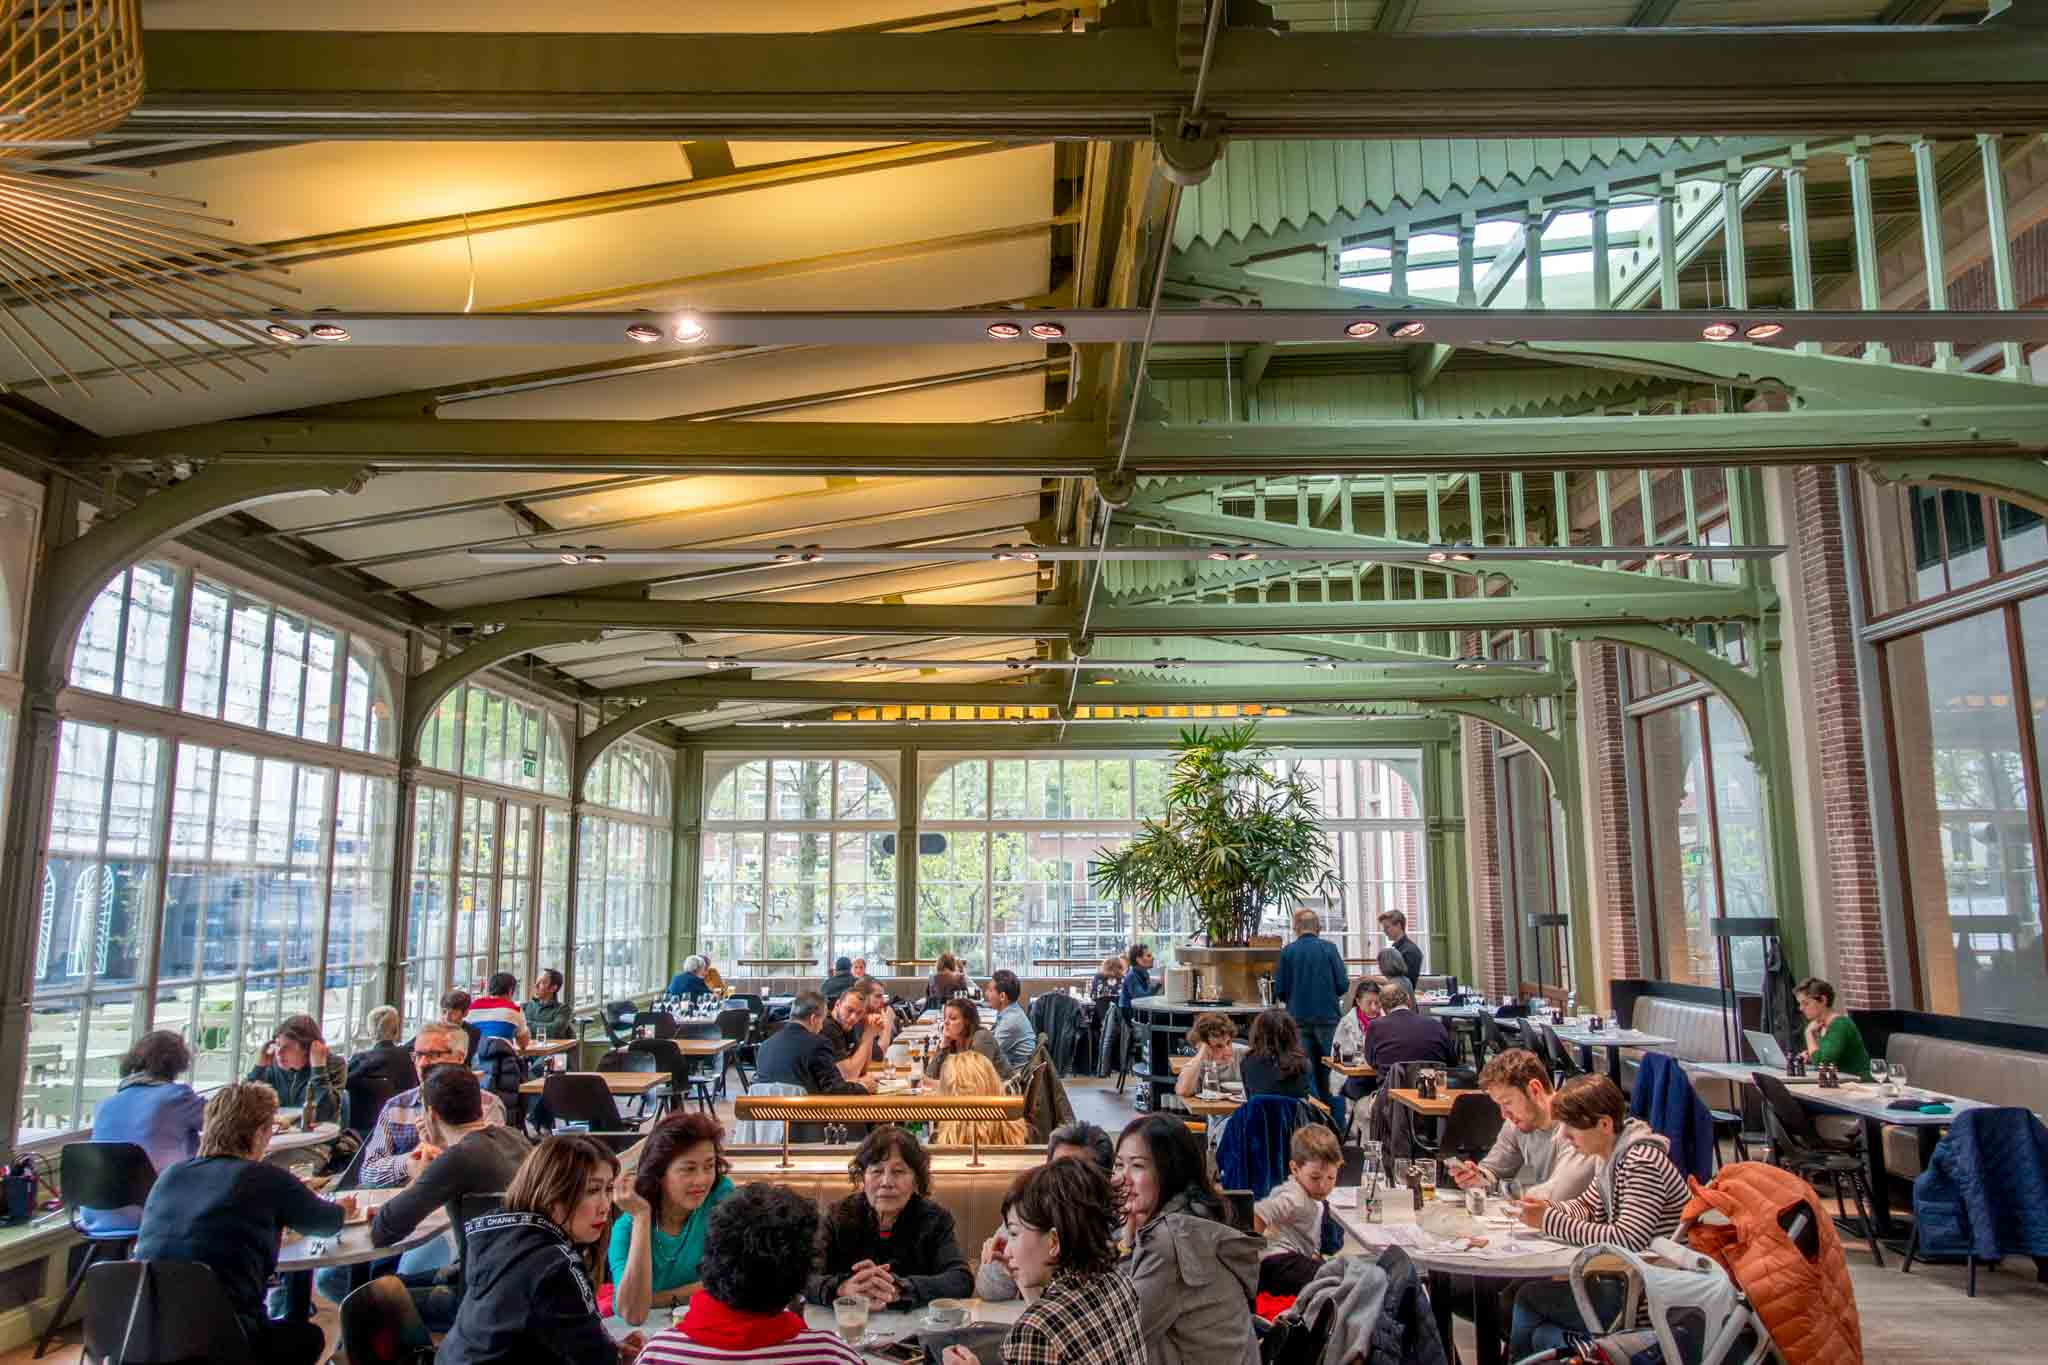 The De Plantage restaurant feels like you're eating in the middle of a garden conservatory